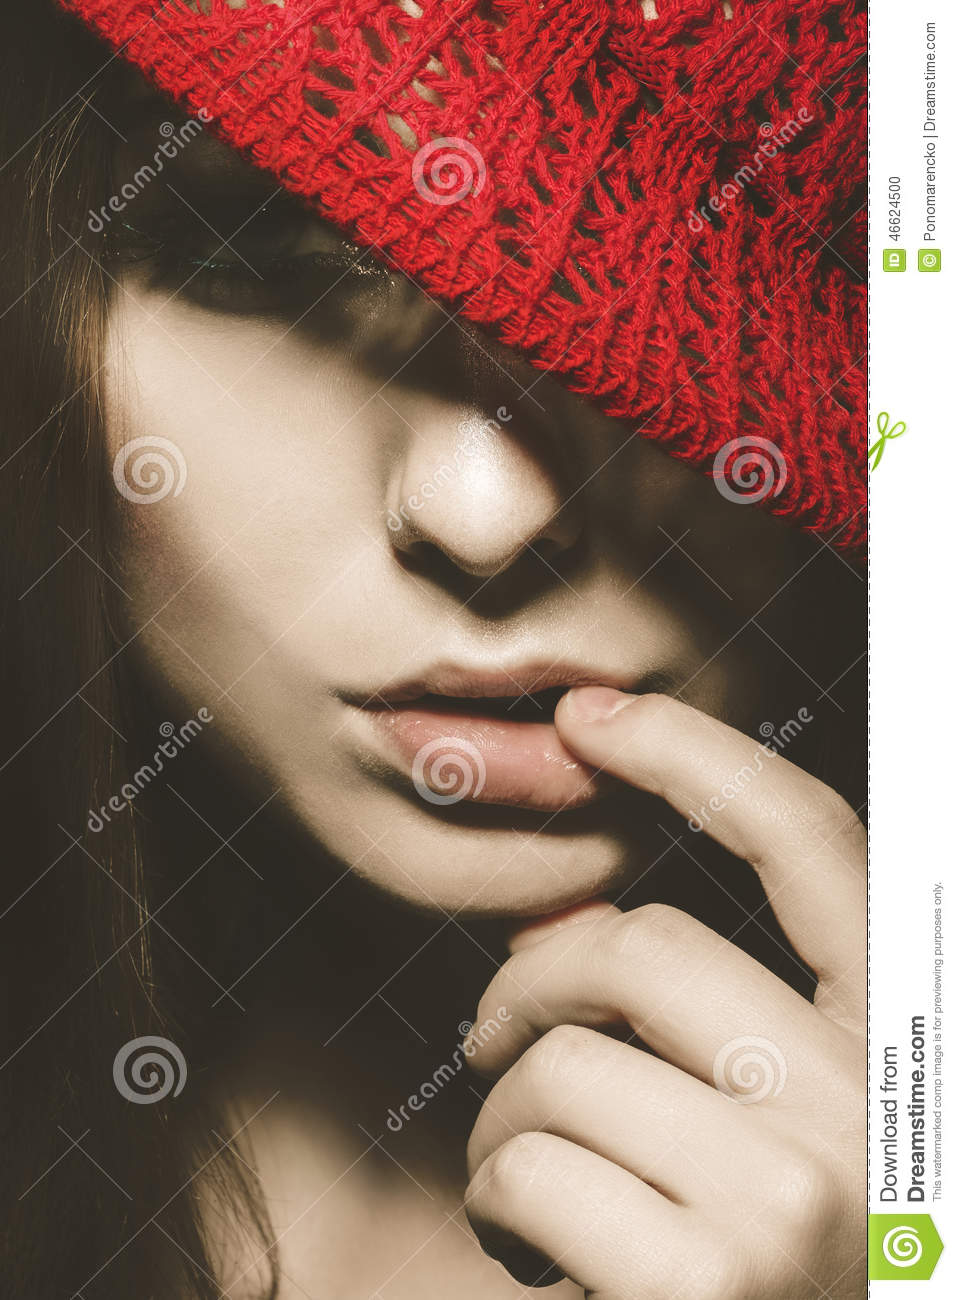 Vertical Portrait Of Pretty 14 Year Old Girl Stock Image: Vertical Portrait Of Cute Woman With Red Hat And Finger